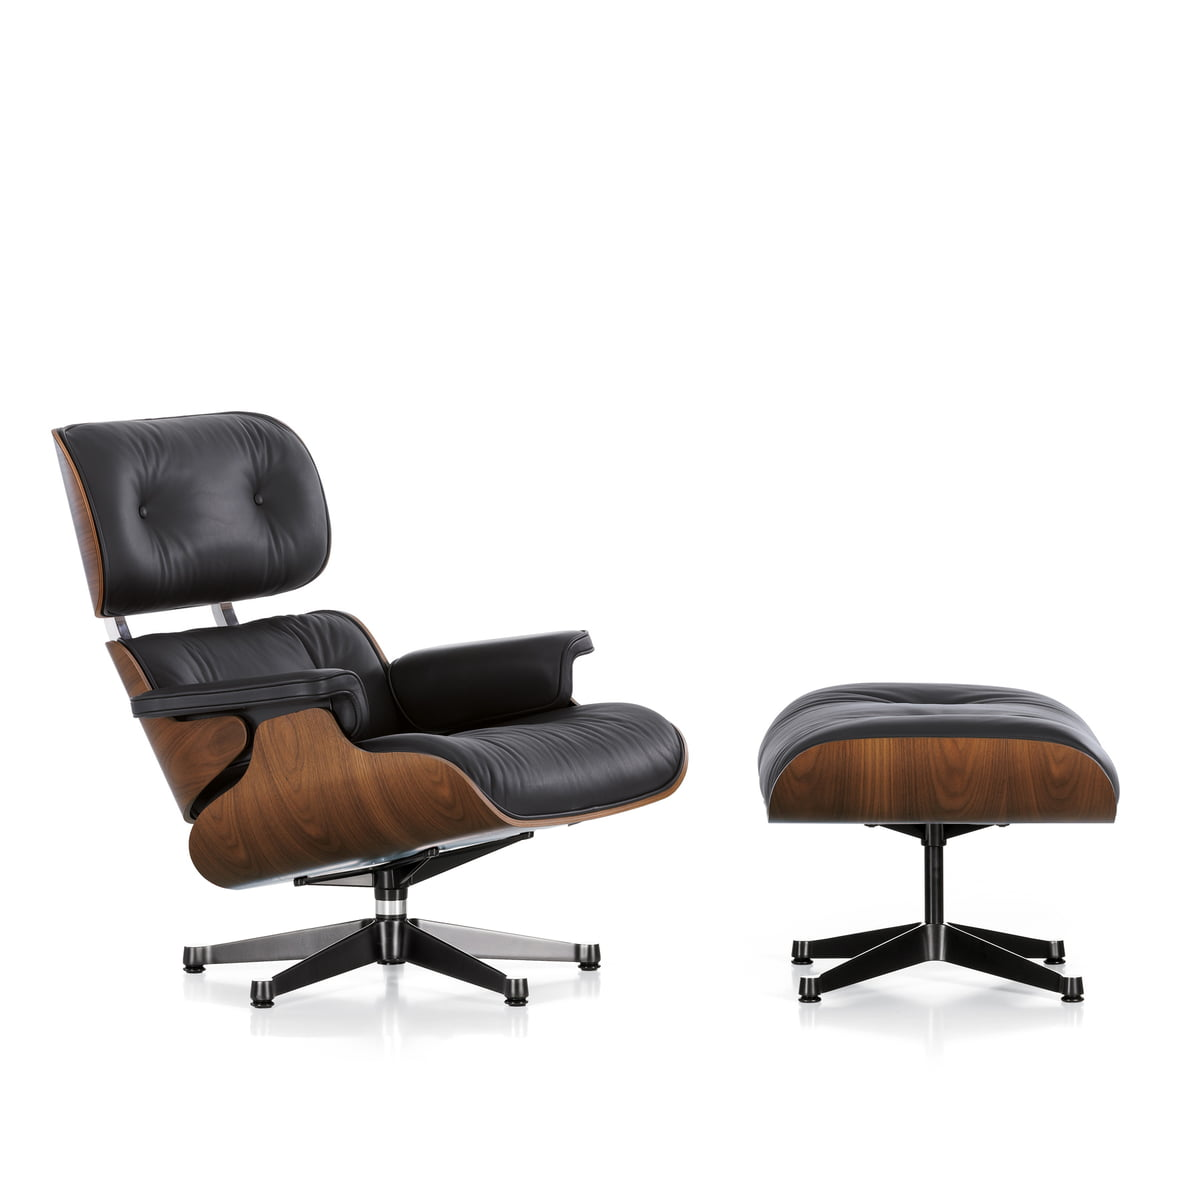 Sessel Leder Stahlrohr Connox De M 100103 215343 Media Vitra Lounge C